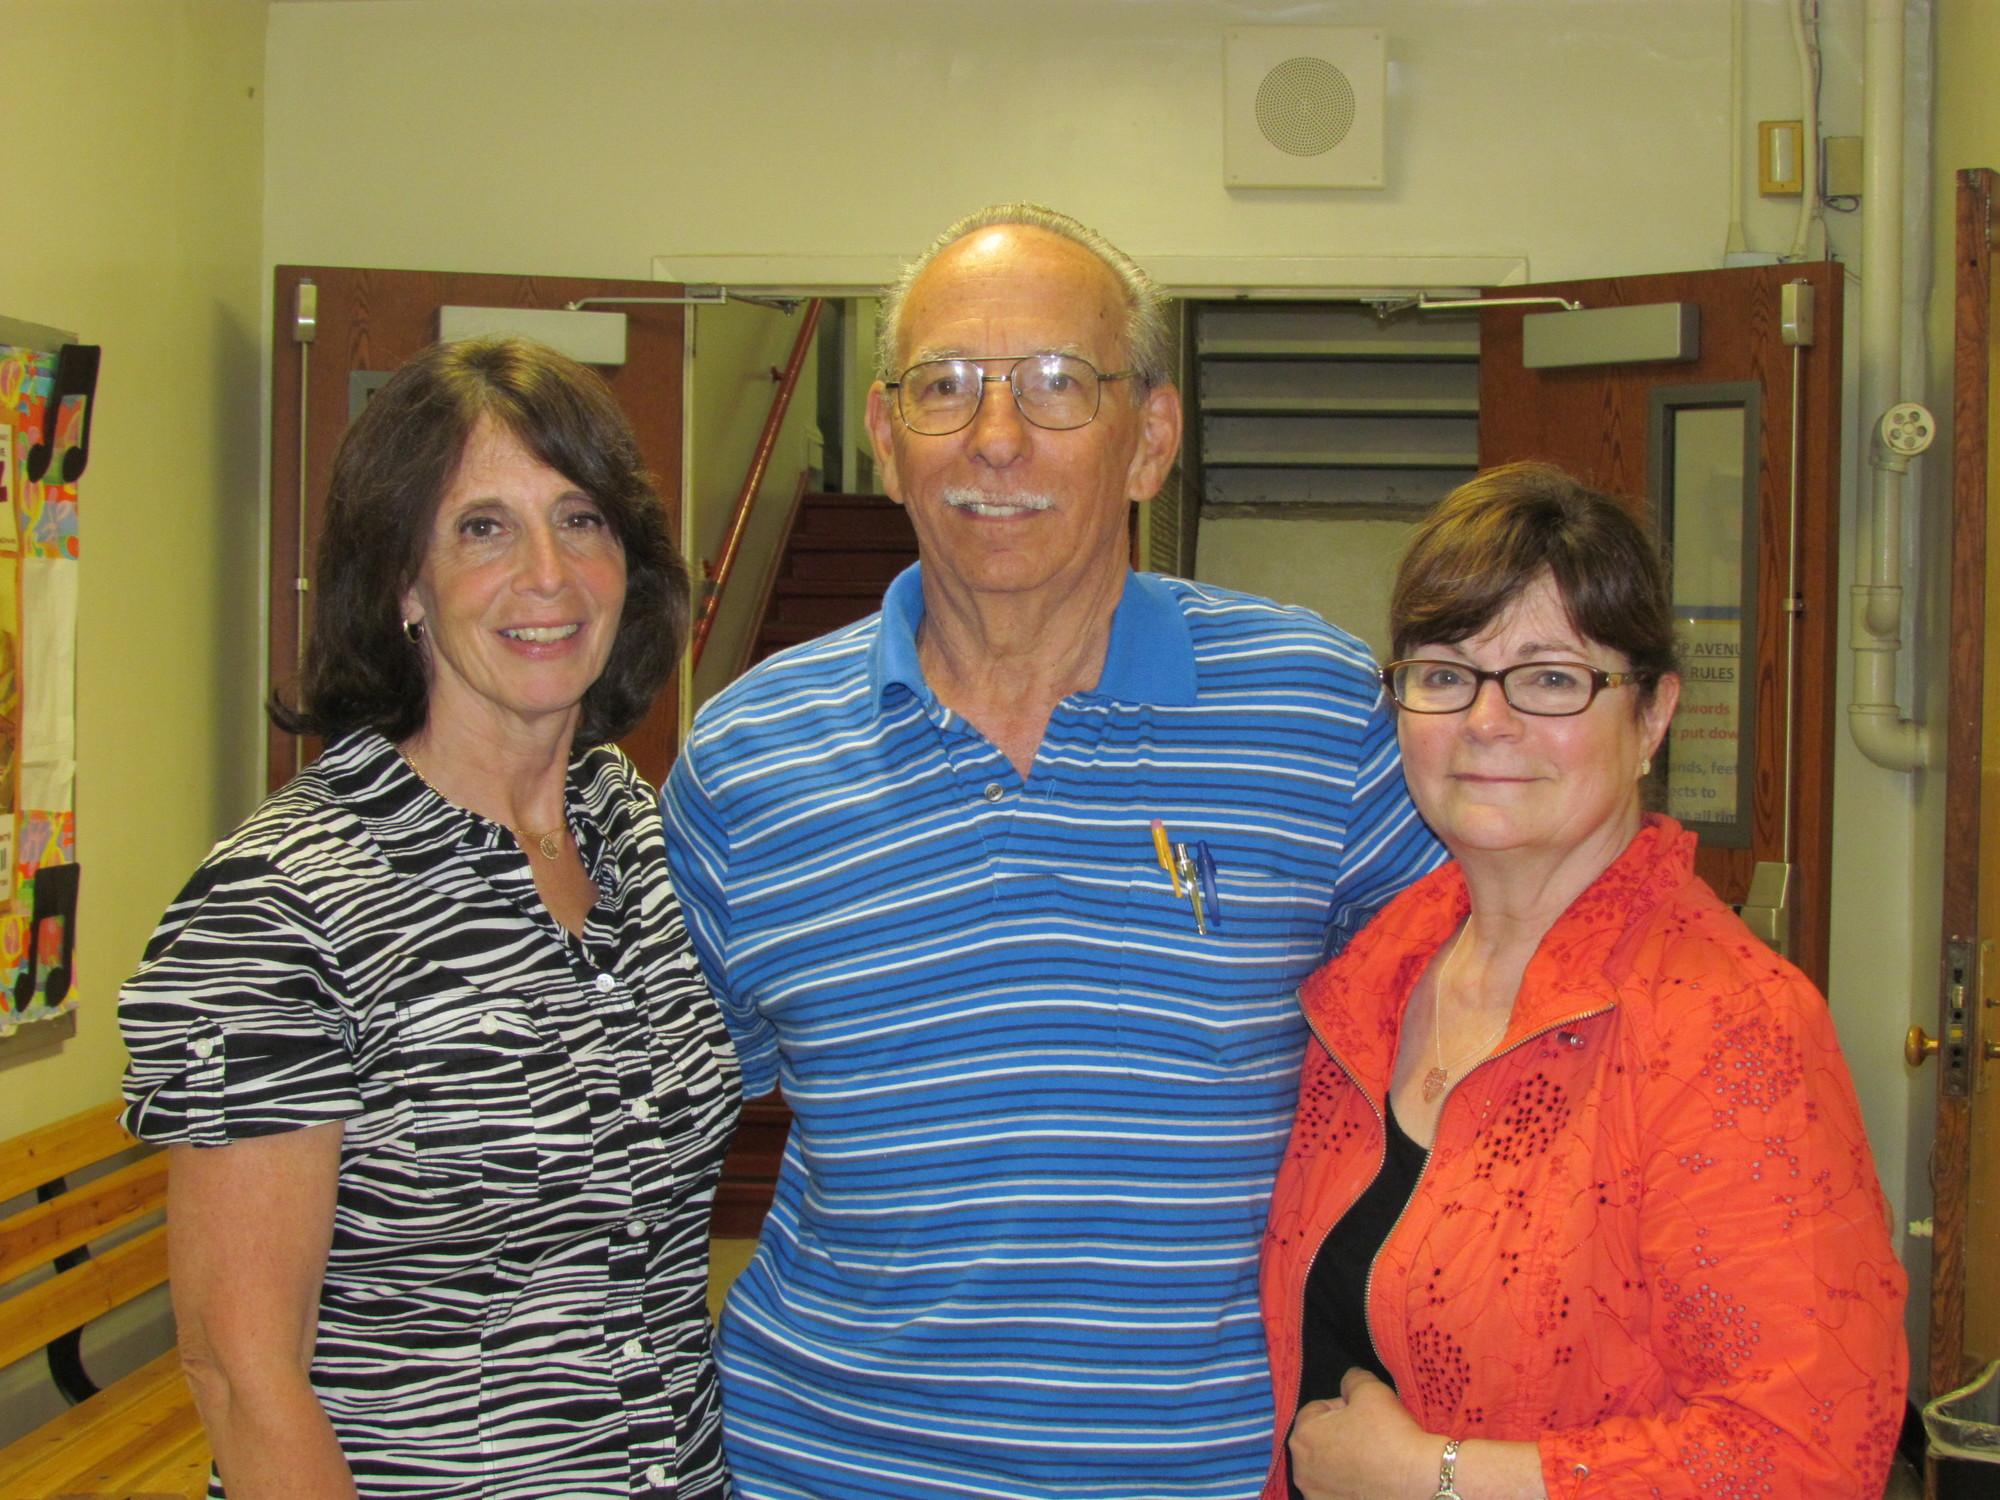 At Their JunE meeting, the Bellmore Board of Education and administration honored retiring staffers: Elissa Doppelt, Joseph Hendrickson and Karolyn Hertzberg. Patricia Hogan could not attend.